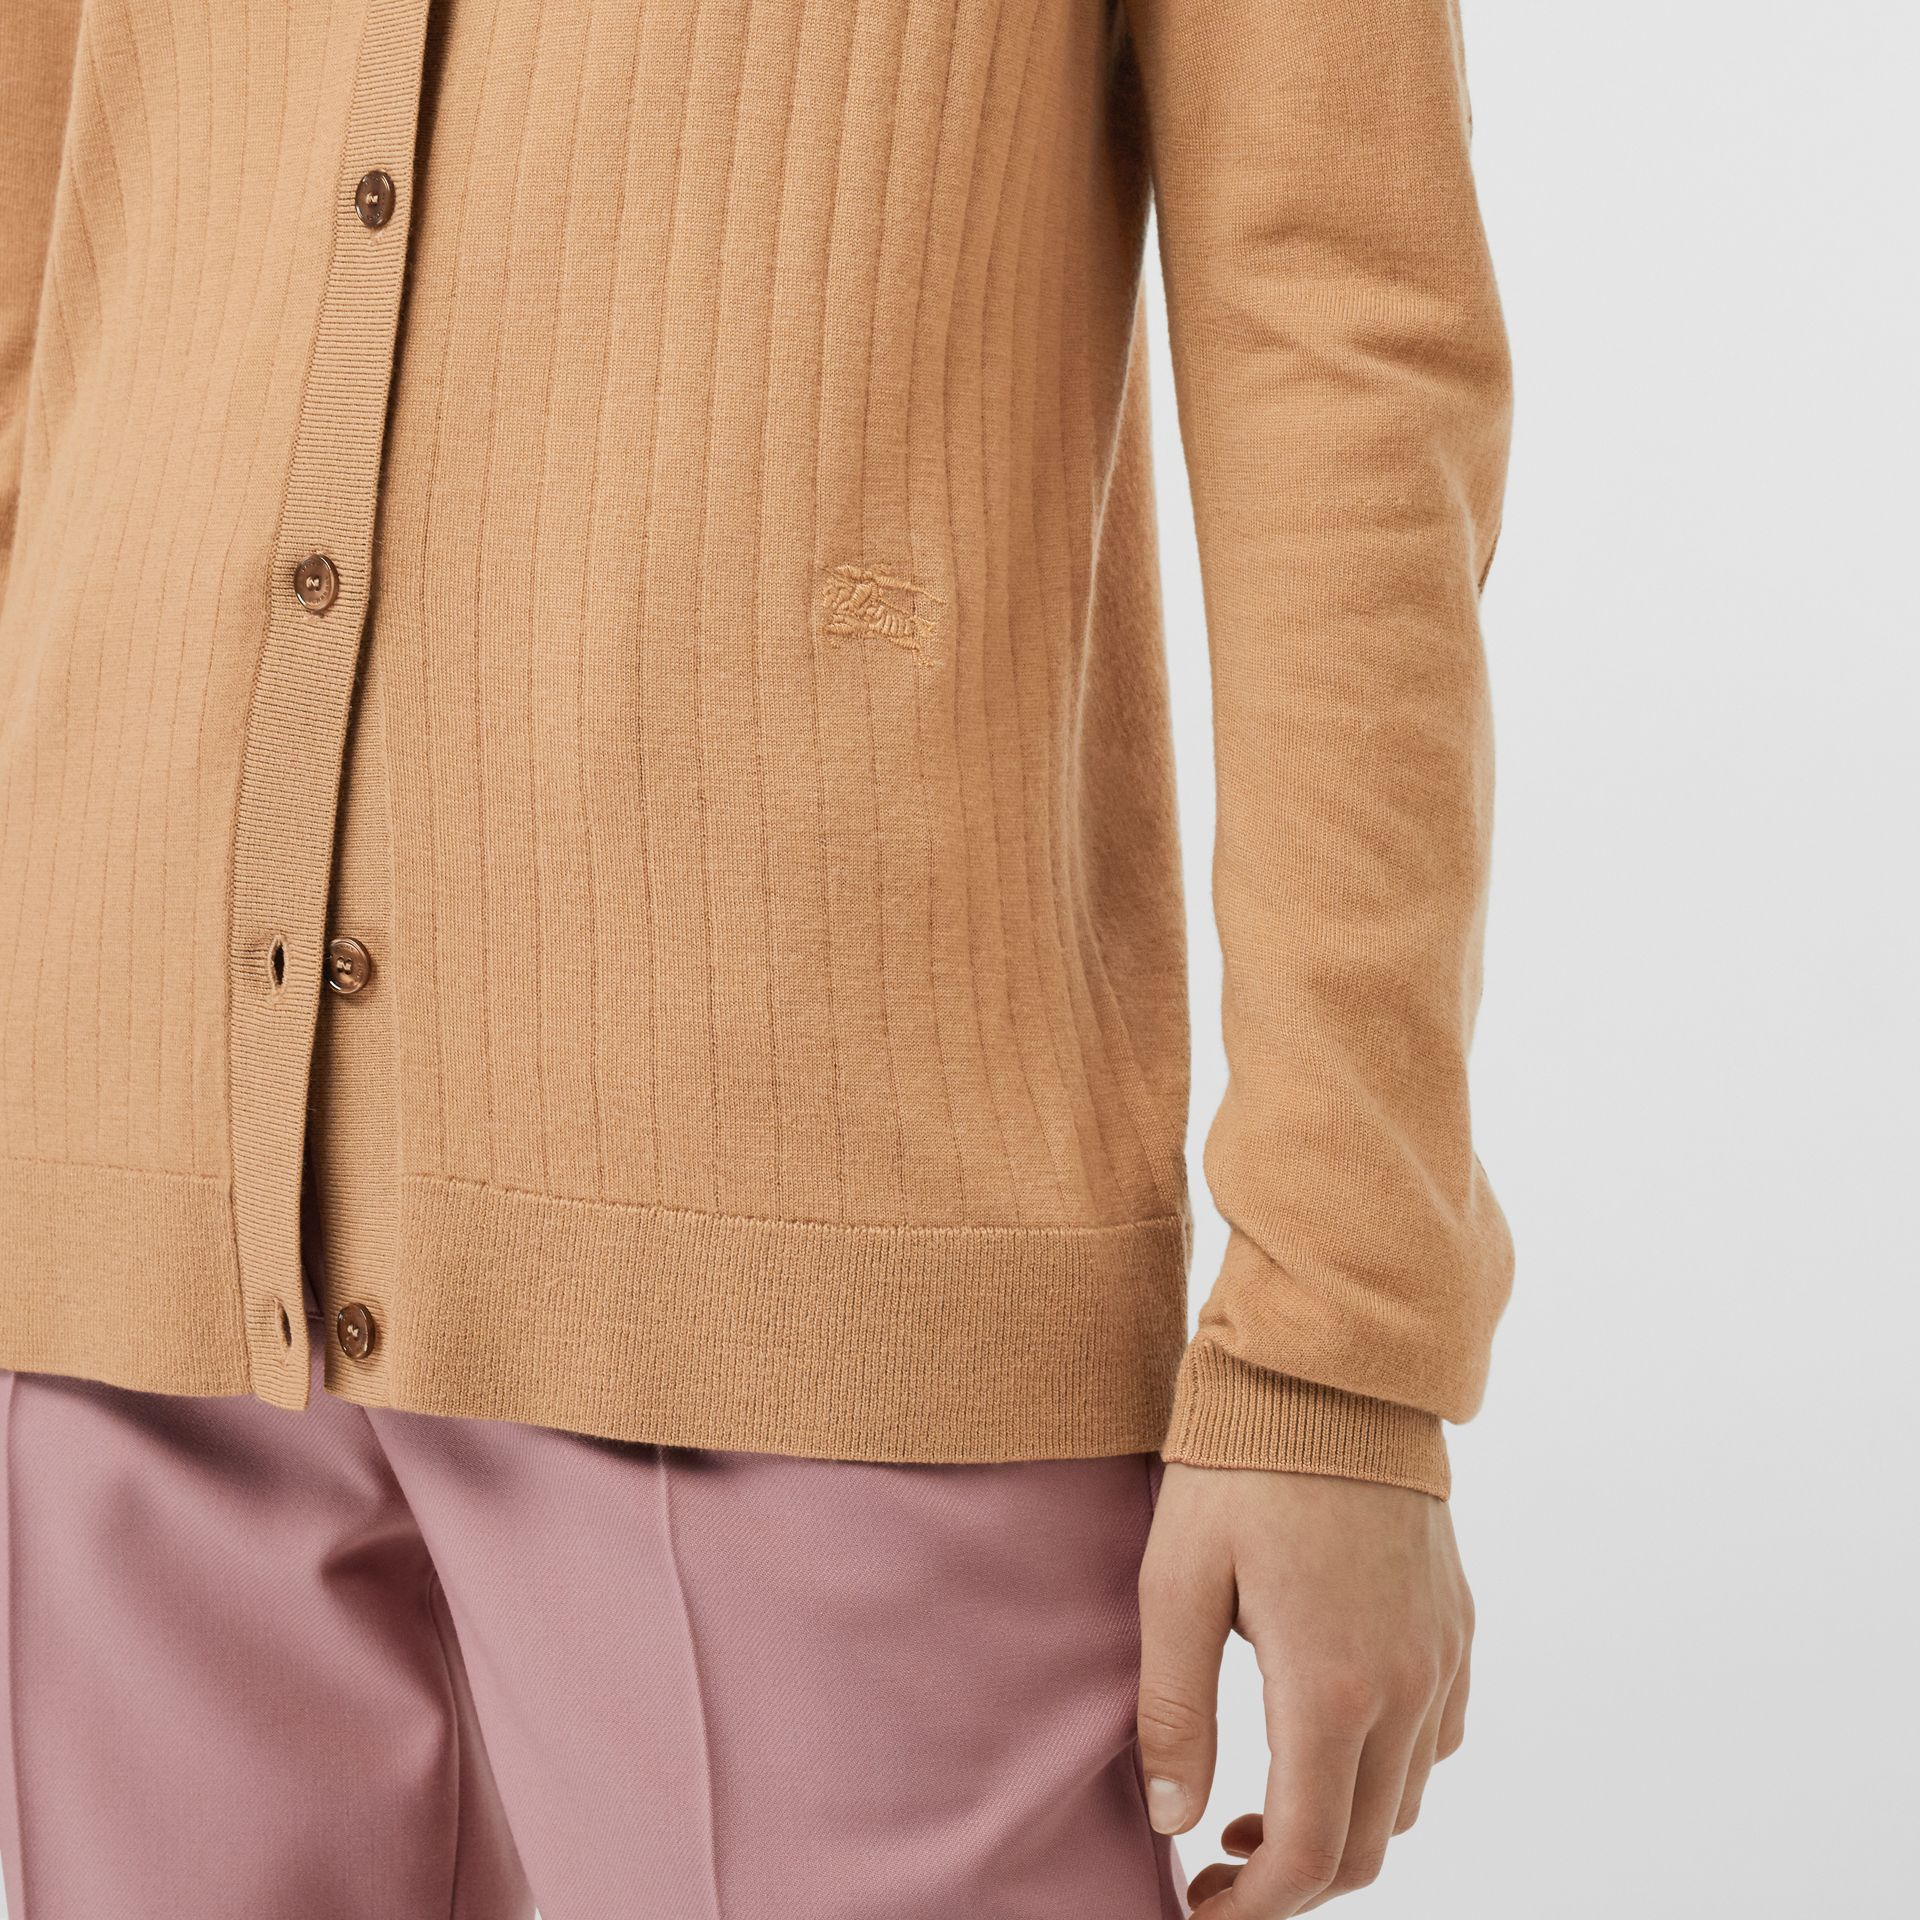 Rib Knit Cashmere Cardigan in Camel - Women | Burberry United Kingdom - gallery image 1